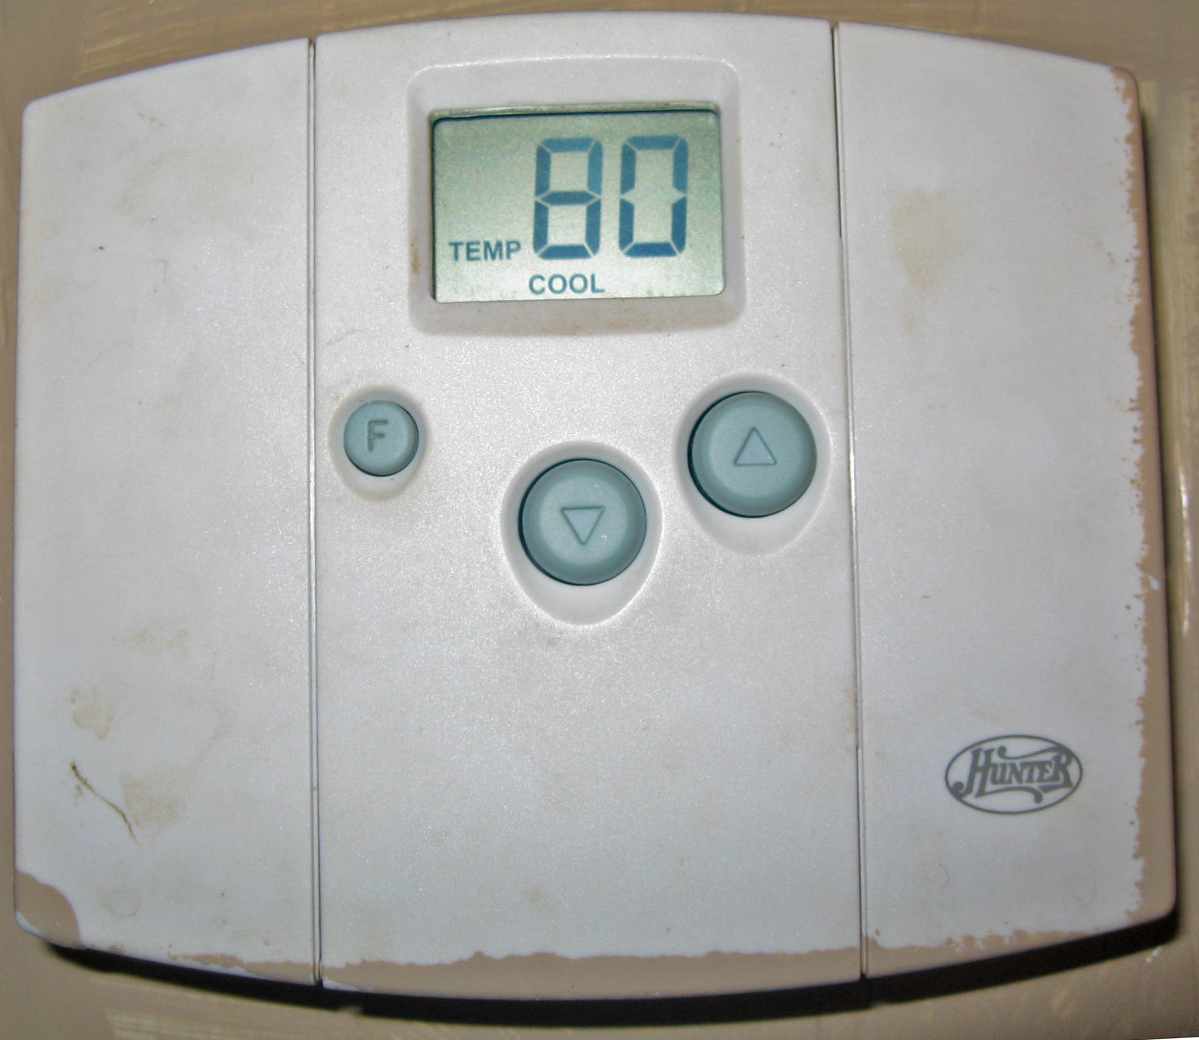 Programmable Thermostats My Florida Home Energy #436F7C